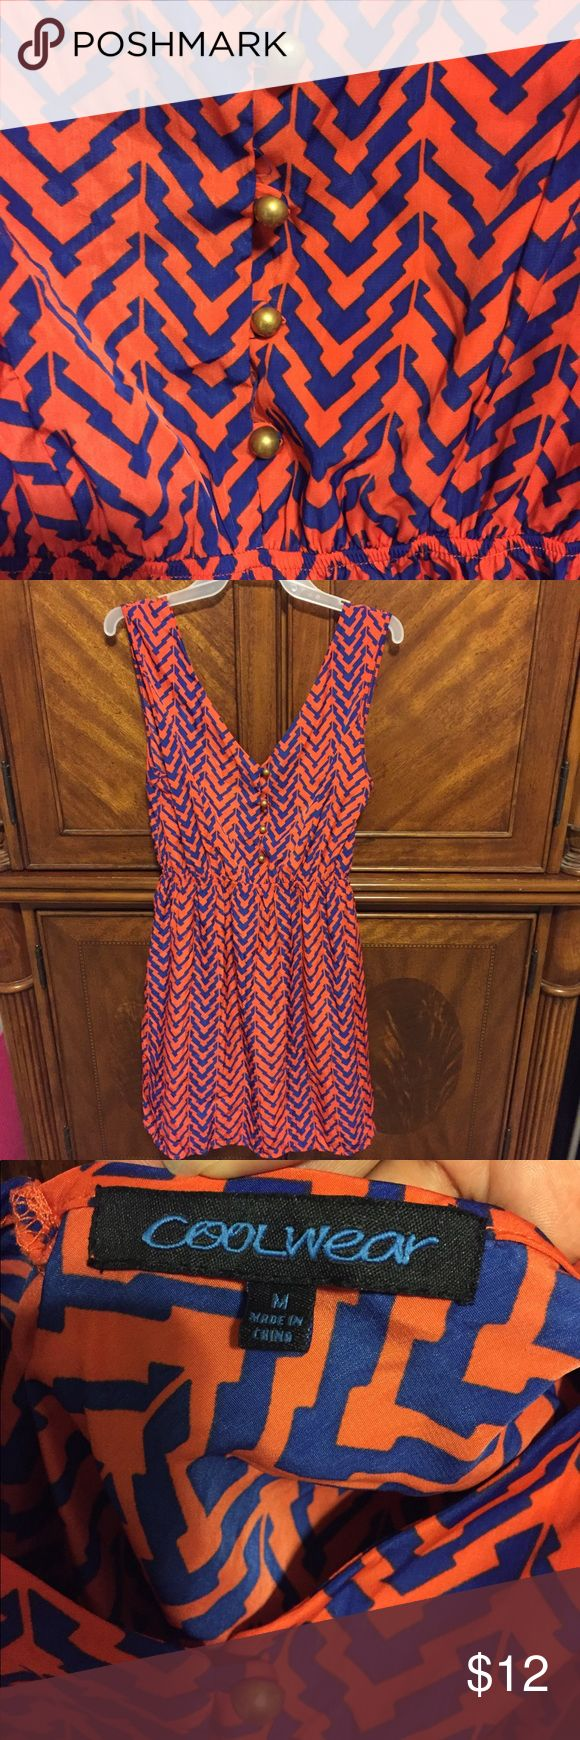 Coolwear Summer Dress size Medium Like new lightweight dress has a plunging neckline and blue and orange chevron design, brass buttons down the front. Elastic waistband. Coolwear Dresses Midi